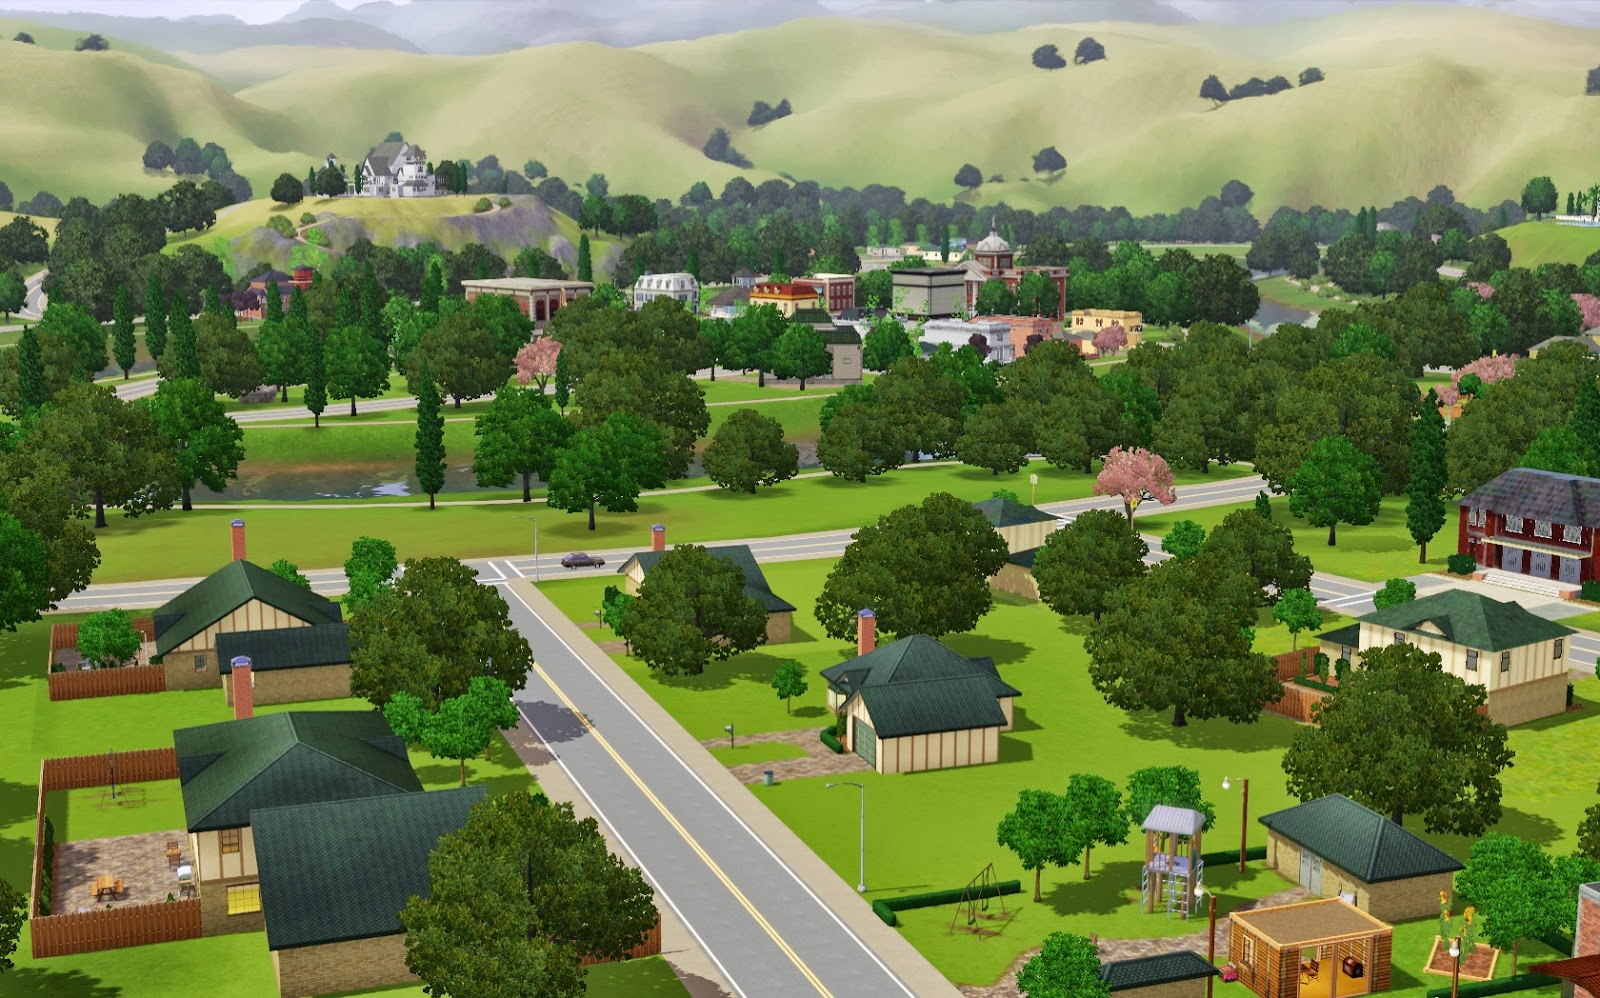 Summer's Little Sims 3 Garden: Riverview List of Empty Lots